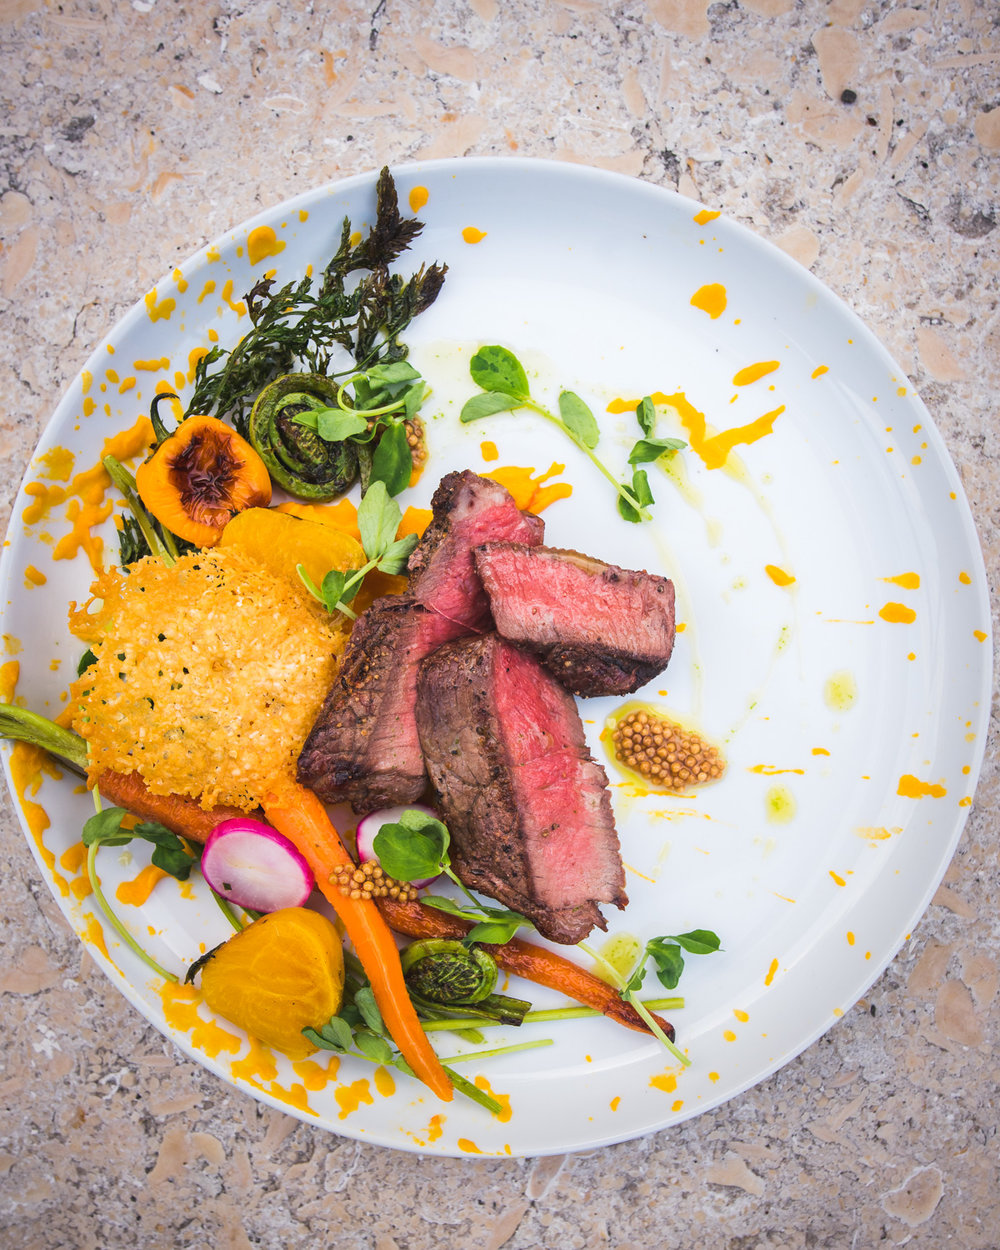 Grilled Striploin Steak with Heirloom Carrots Puree, Fiddleheads and Charred Peppers